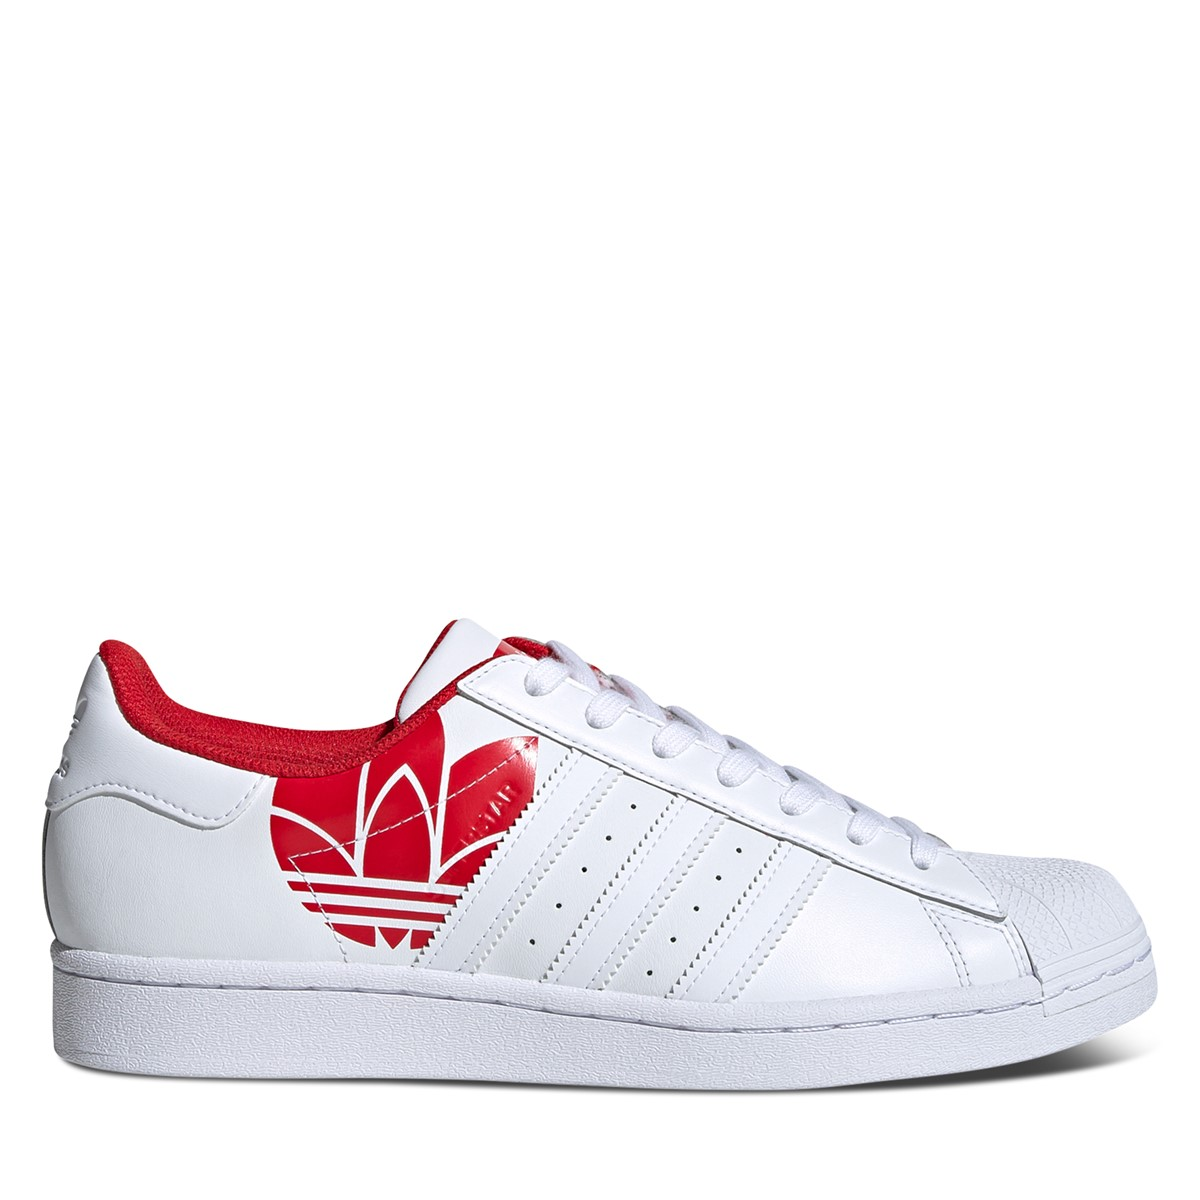 Superstar Sneakers in White